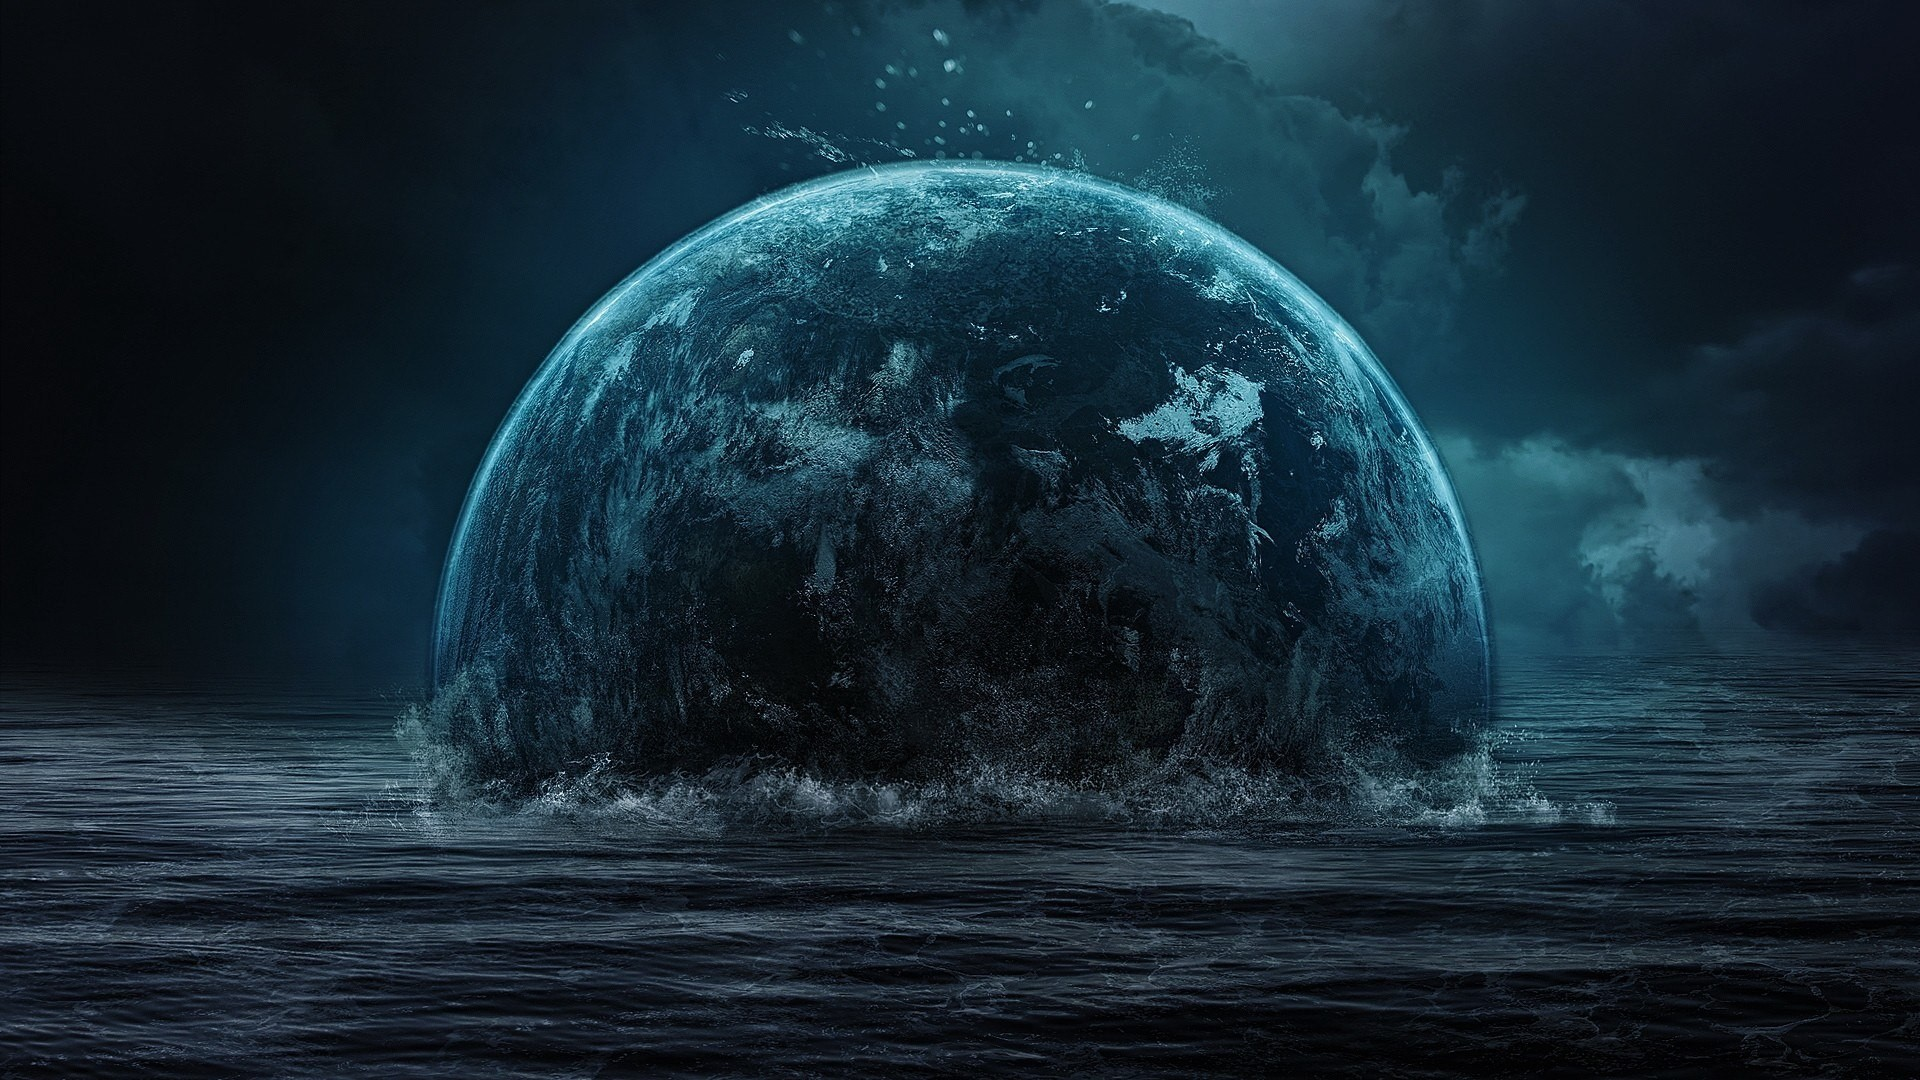 The earth is immersed in water